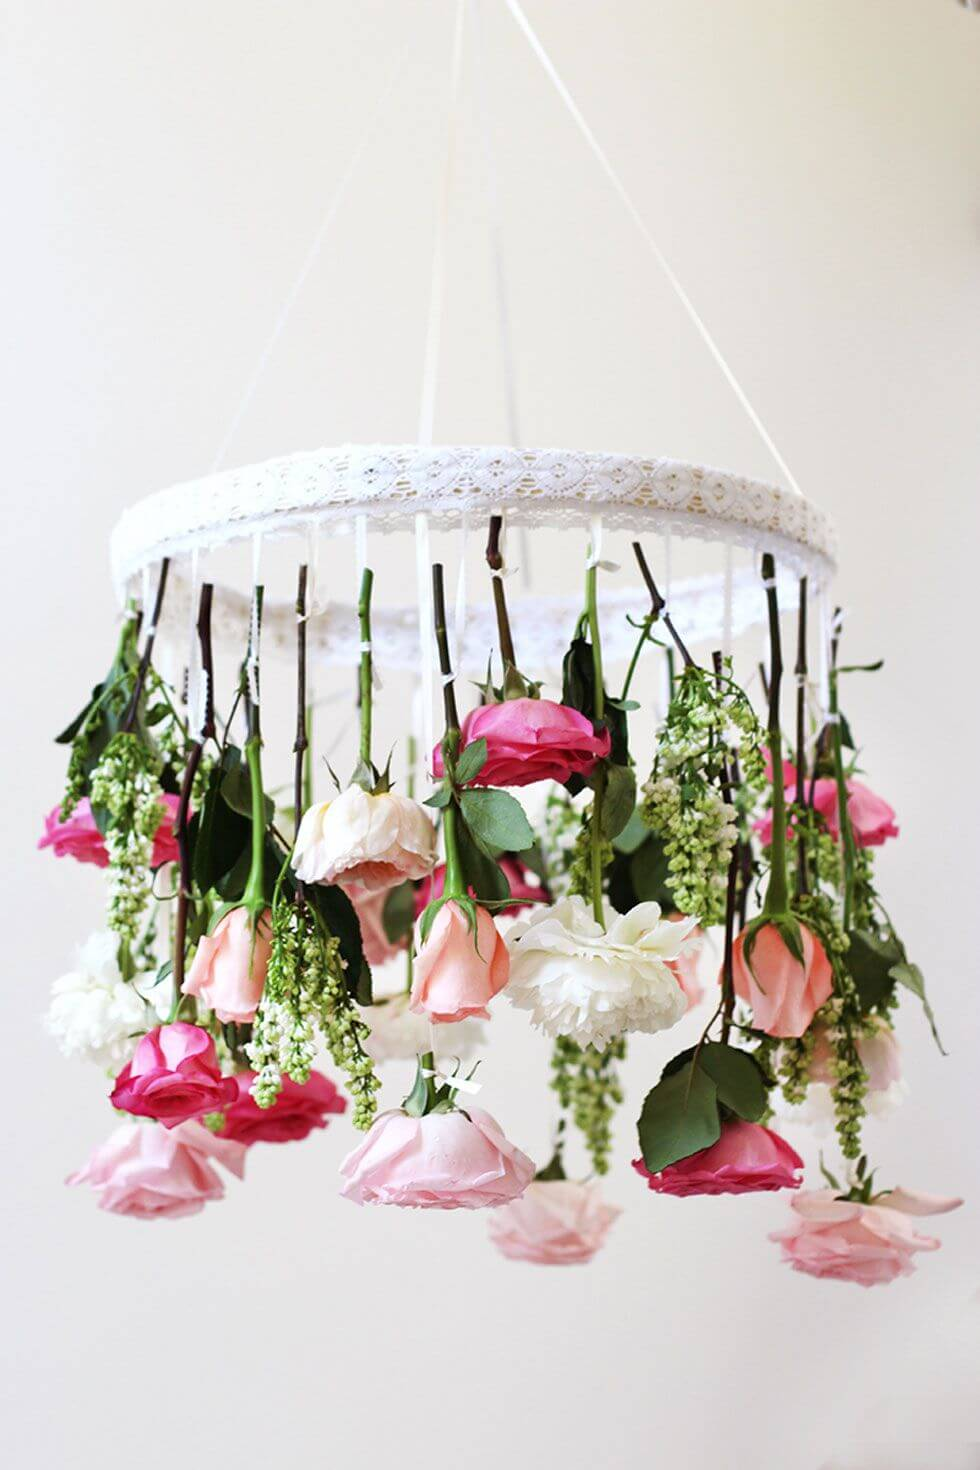 Special-romantic-flowers.-1 70+ Hottest Marriage Anniversary Decoration Ideas at Home